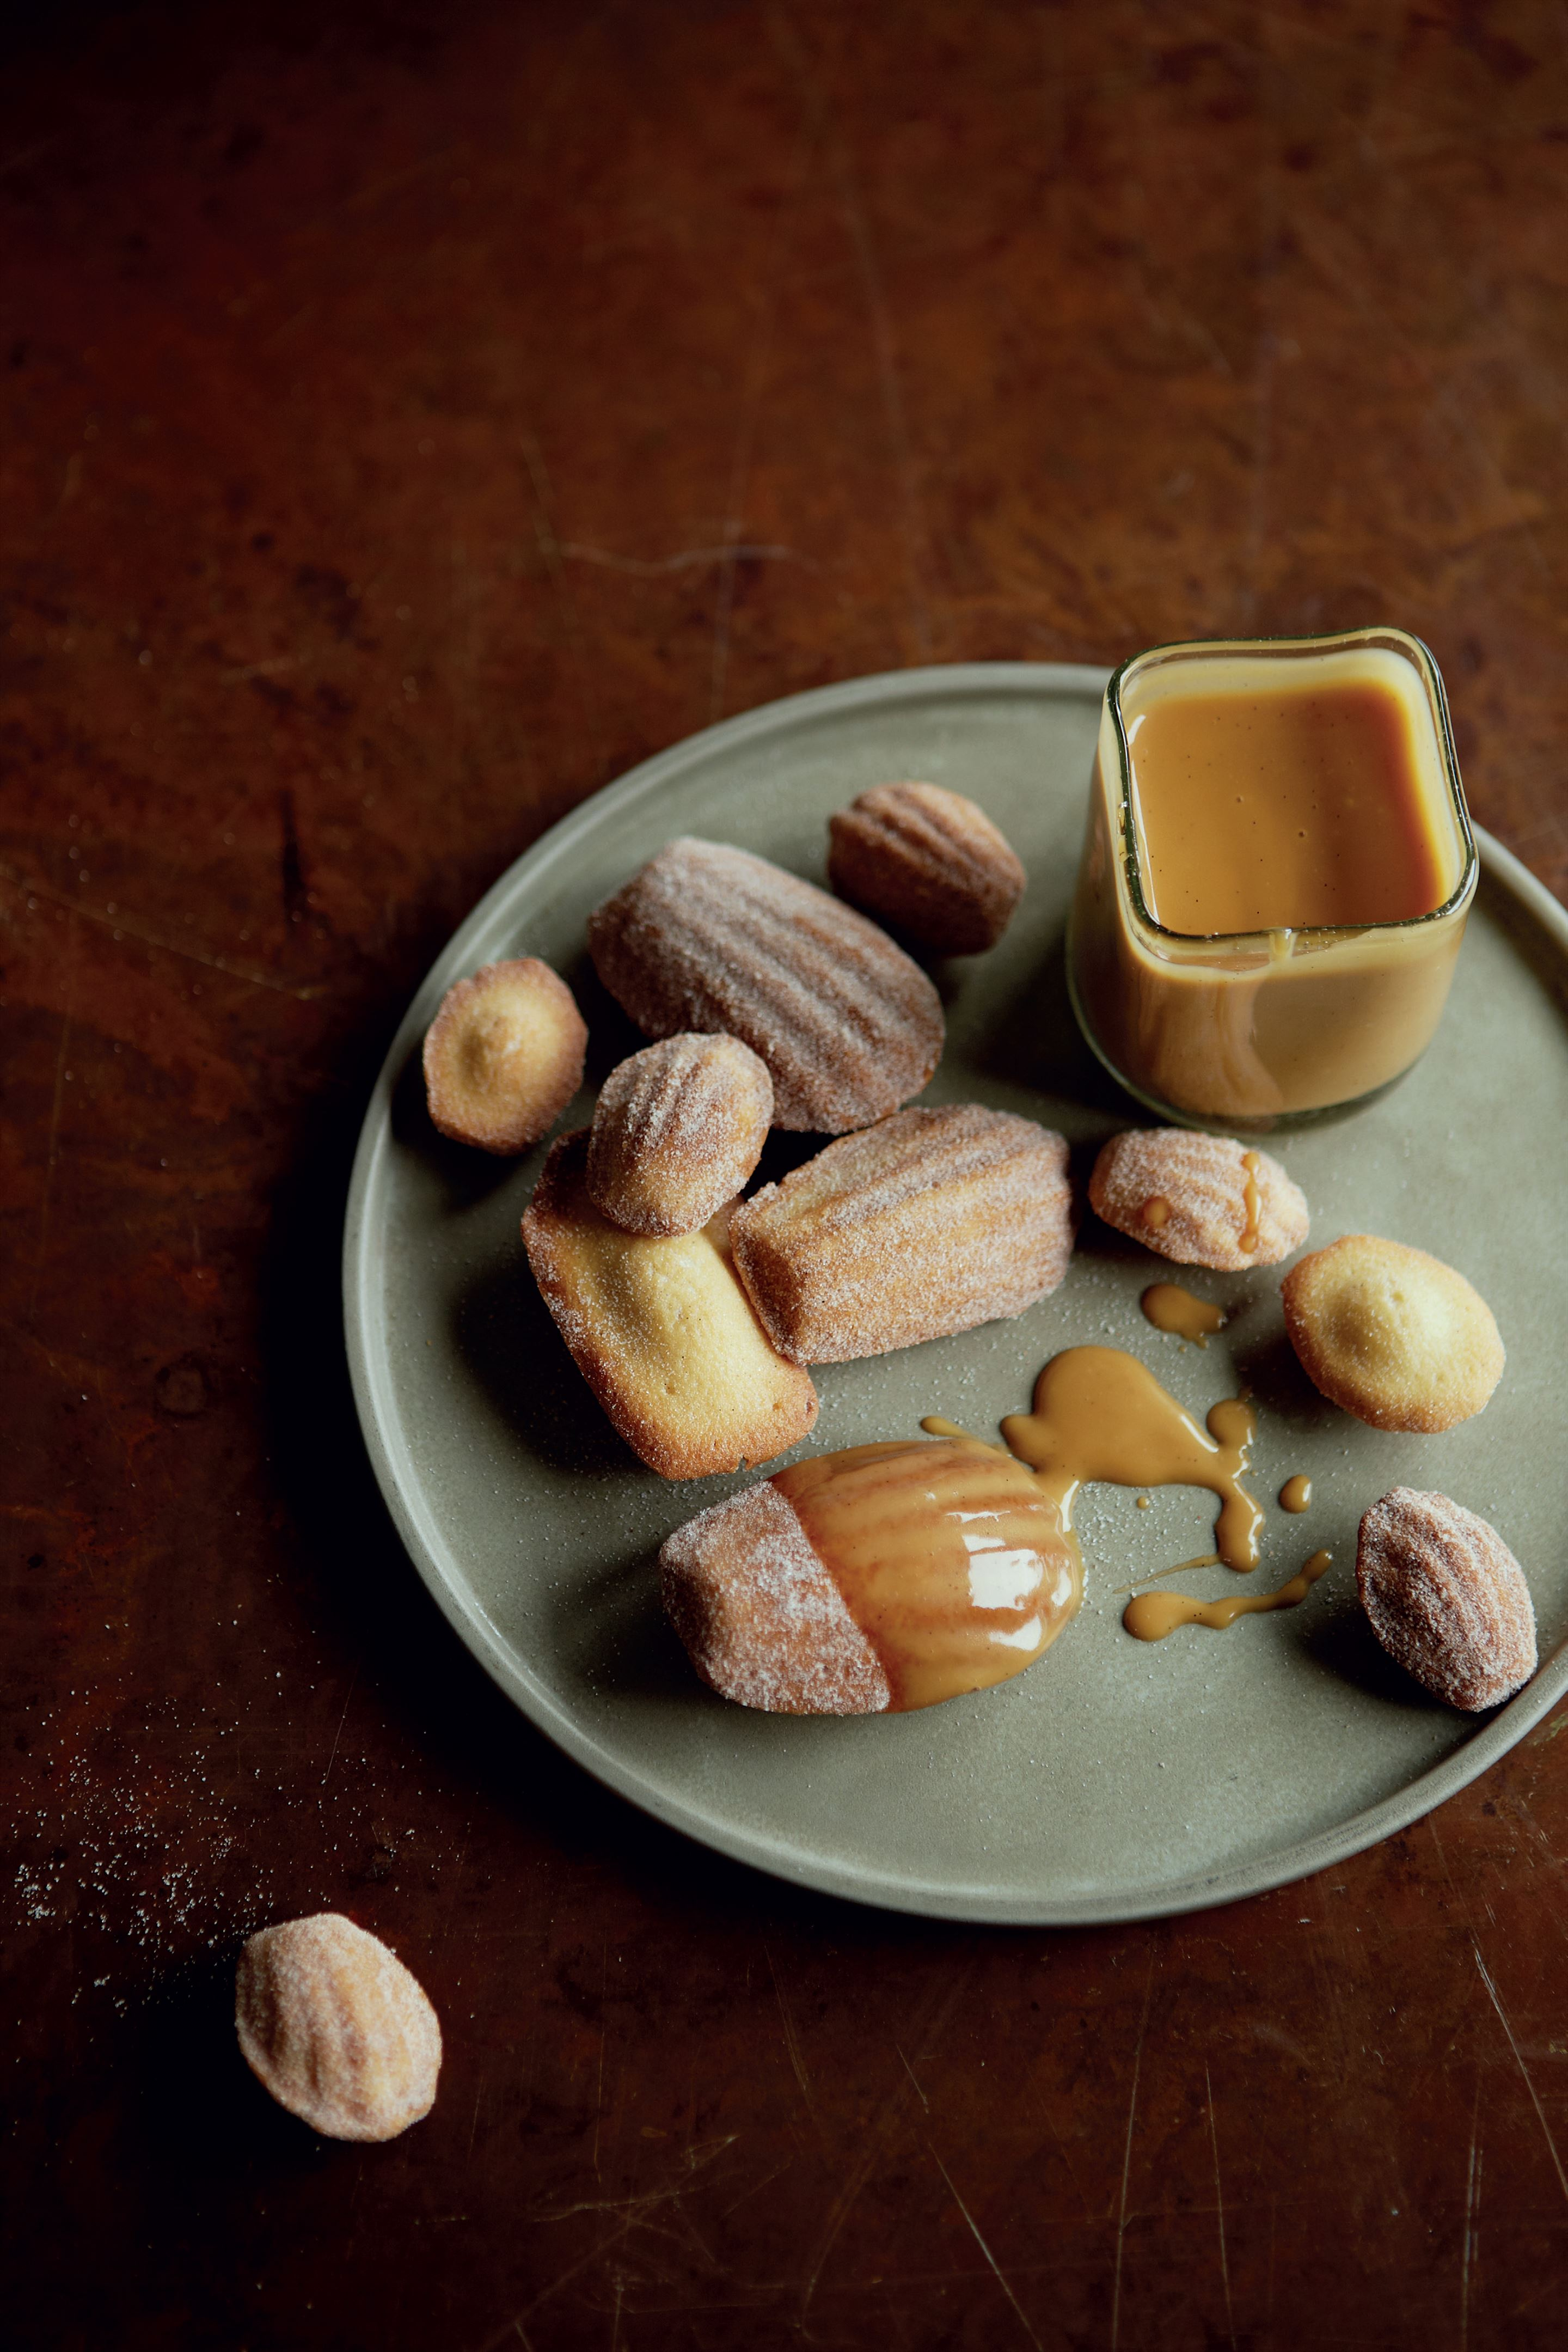 Cinnamon madeleines with winter-spiced caramel sauce